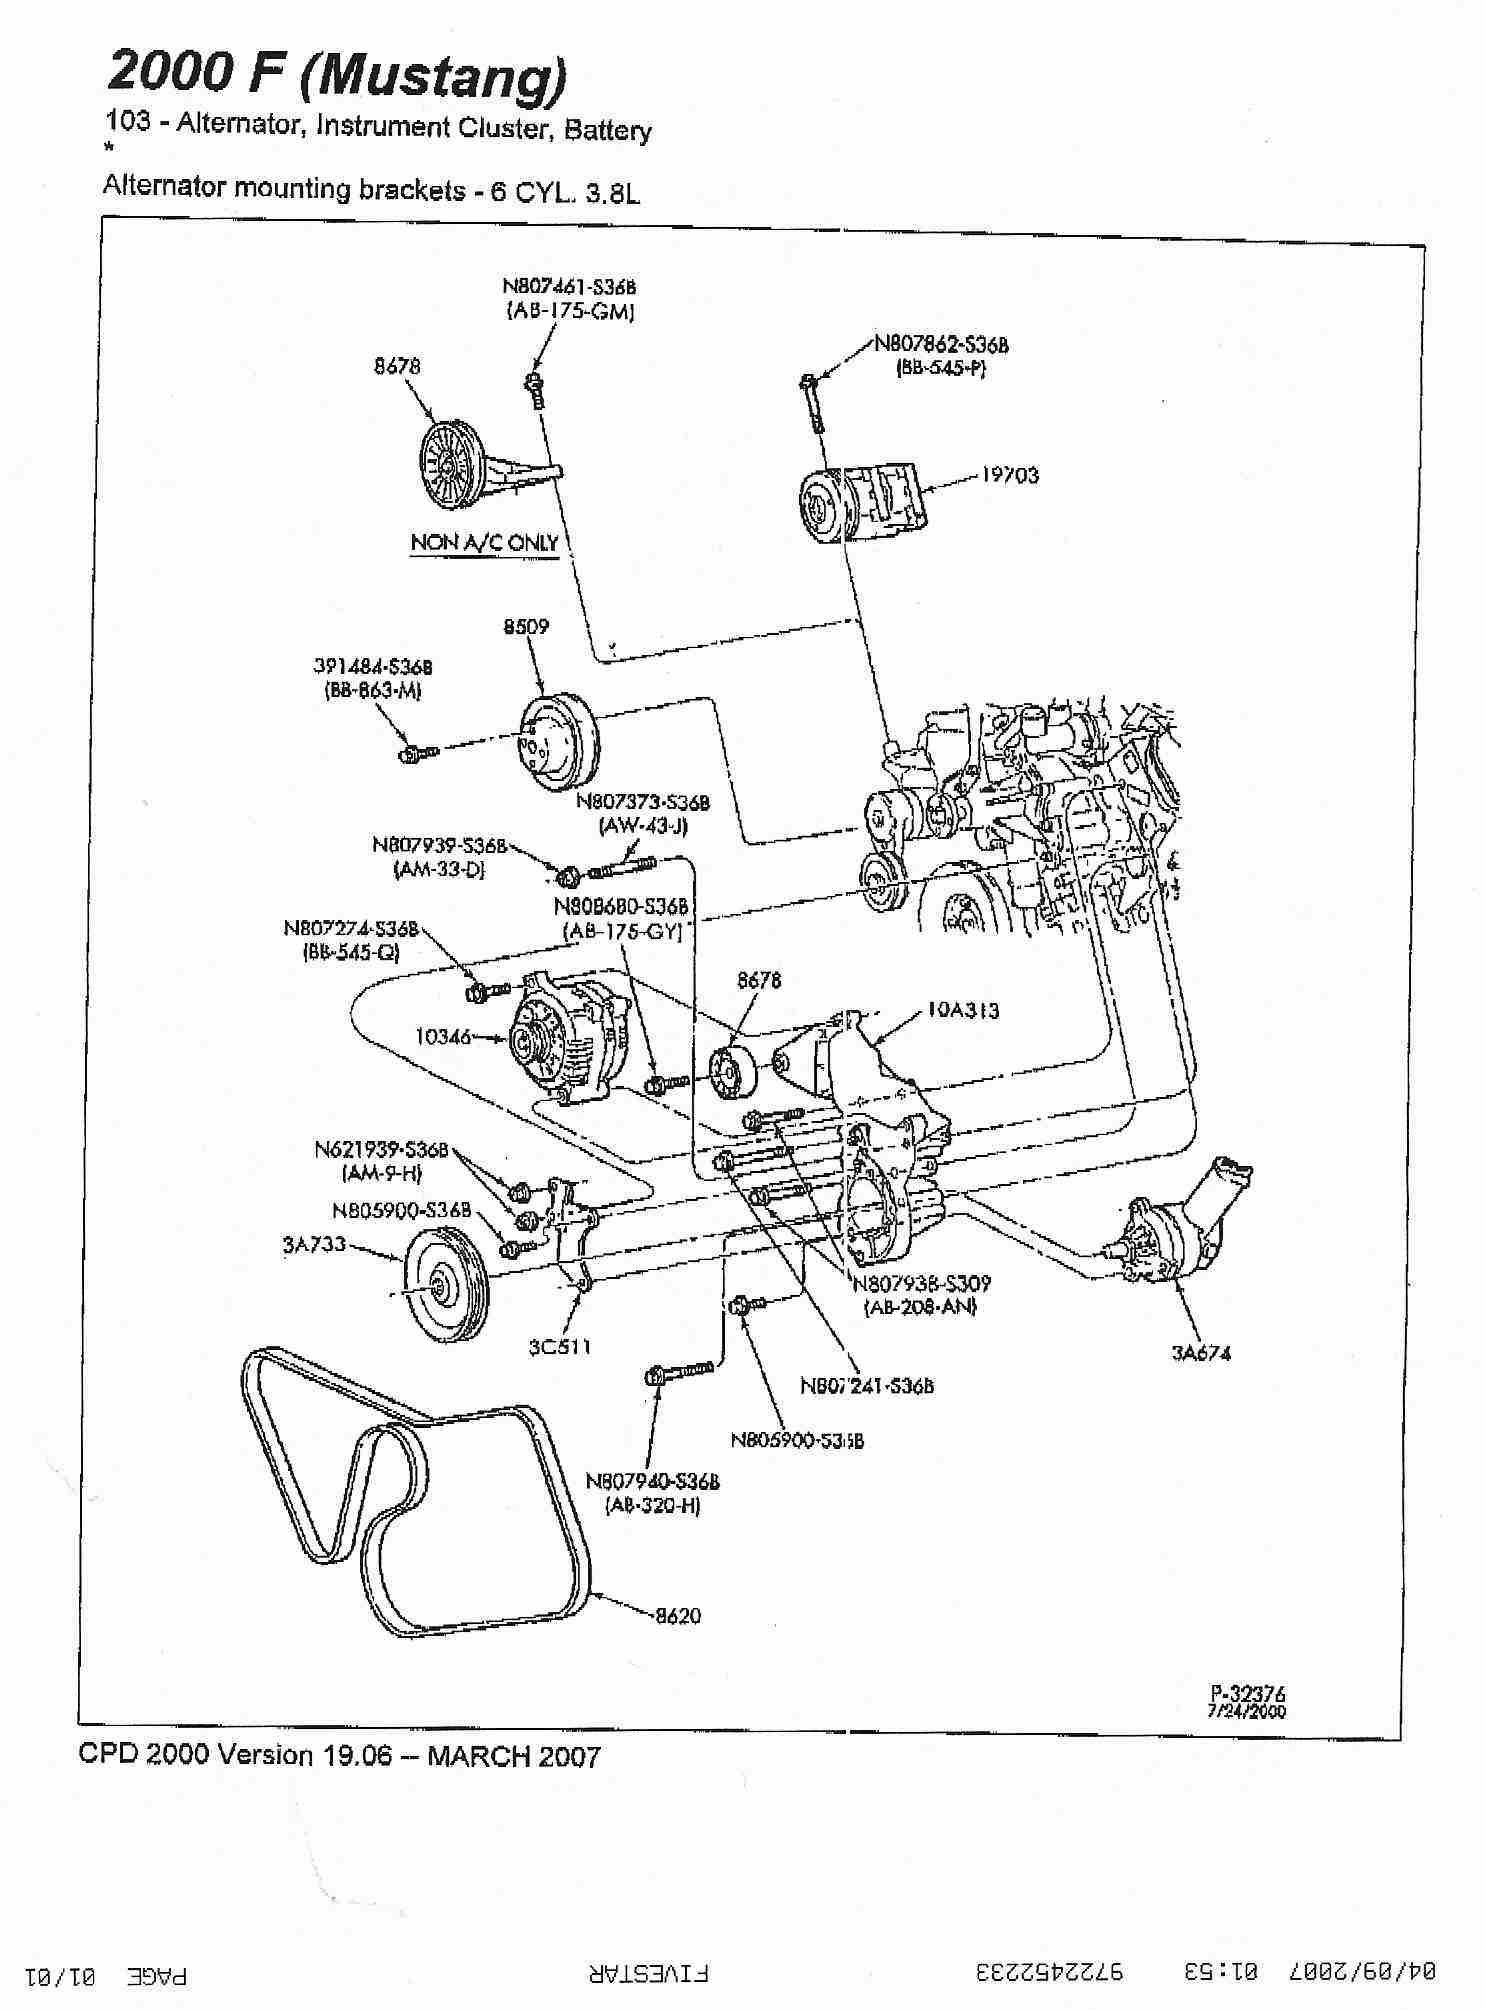 1999 mustang 3 8 engine fuel line diagram | shop-restorat wiring diagram  storage - shop-restorat.marbast.eu  marbast